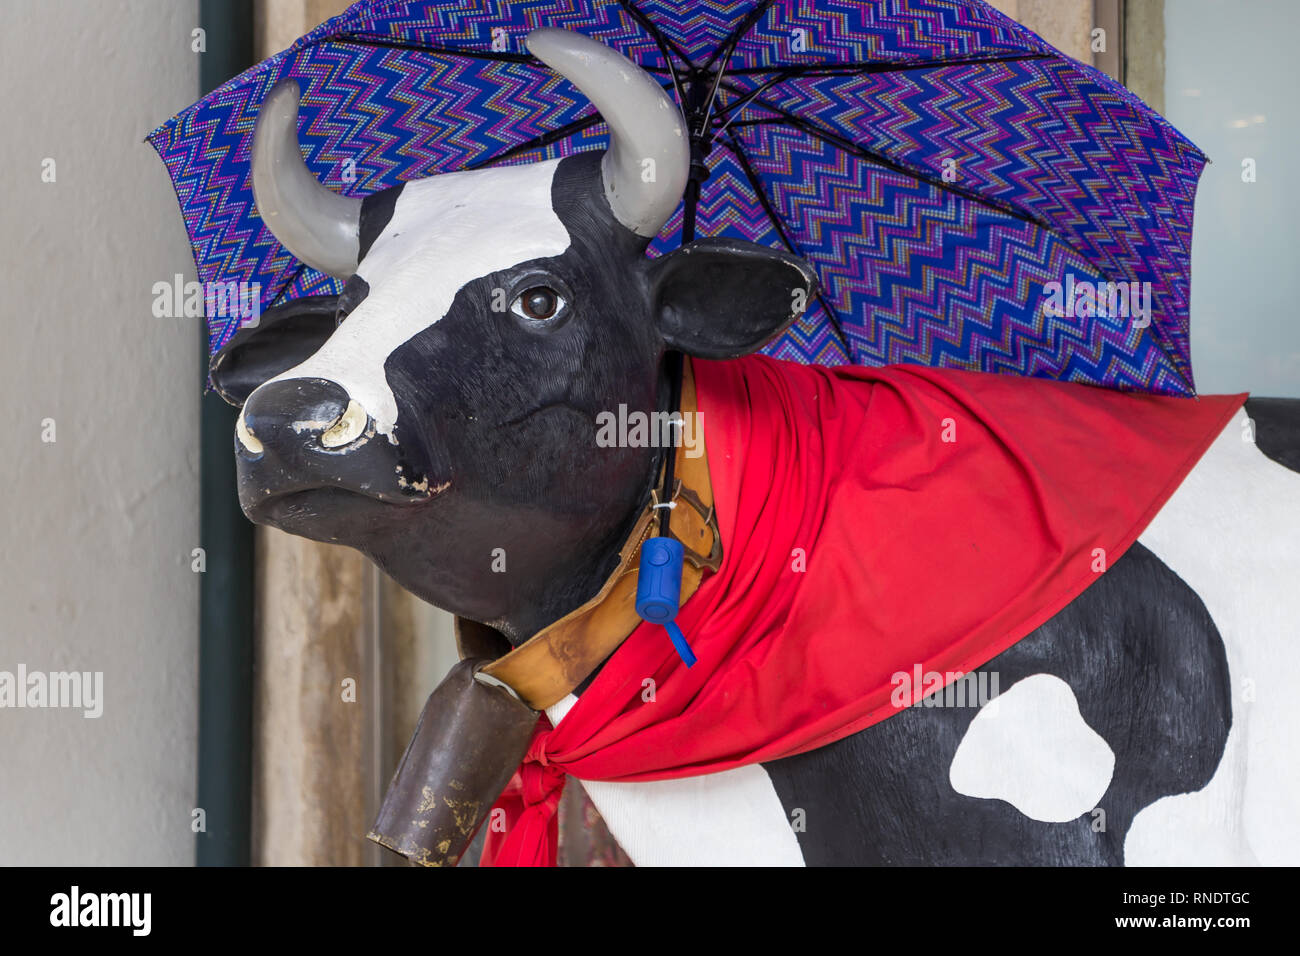 Decorated cow statue with a umbrella and a red sjawl - Stock Image